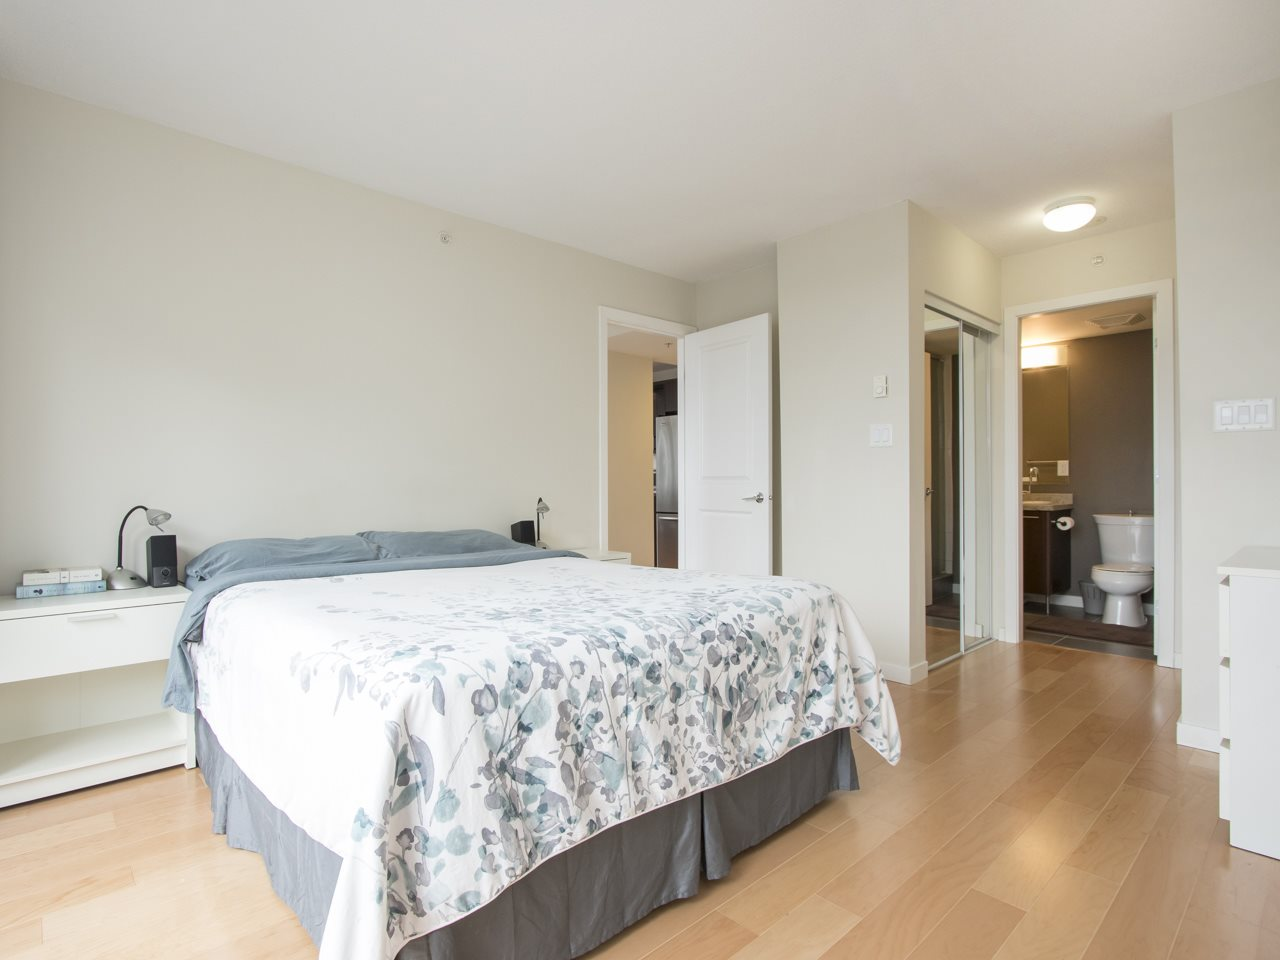 Photo 12: 1002 1650 W 7TH AVENUE in Vancouver: Fairview VW Condo for sale (Vancouver West)  : MLS® # R2022214